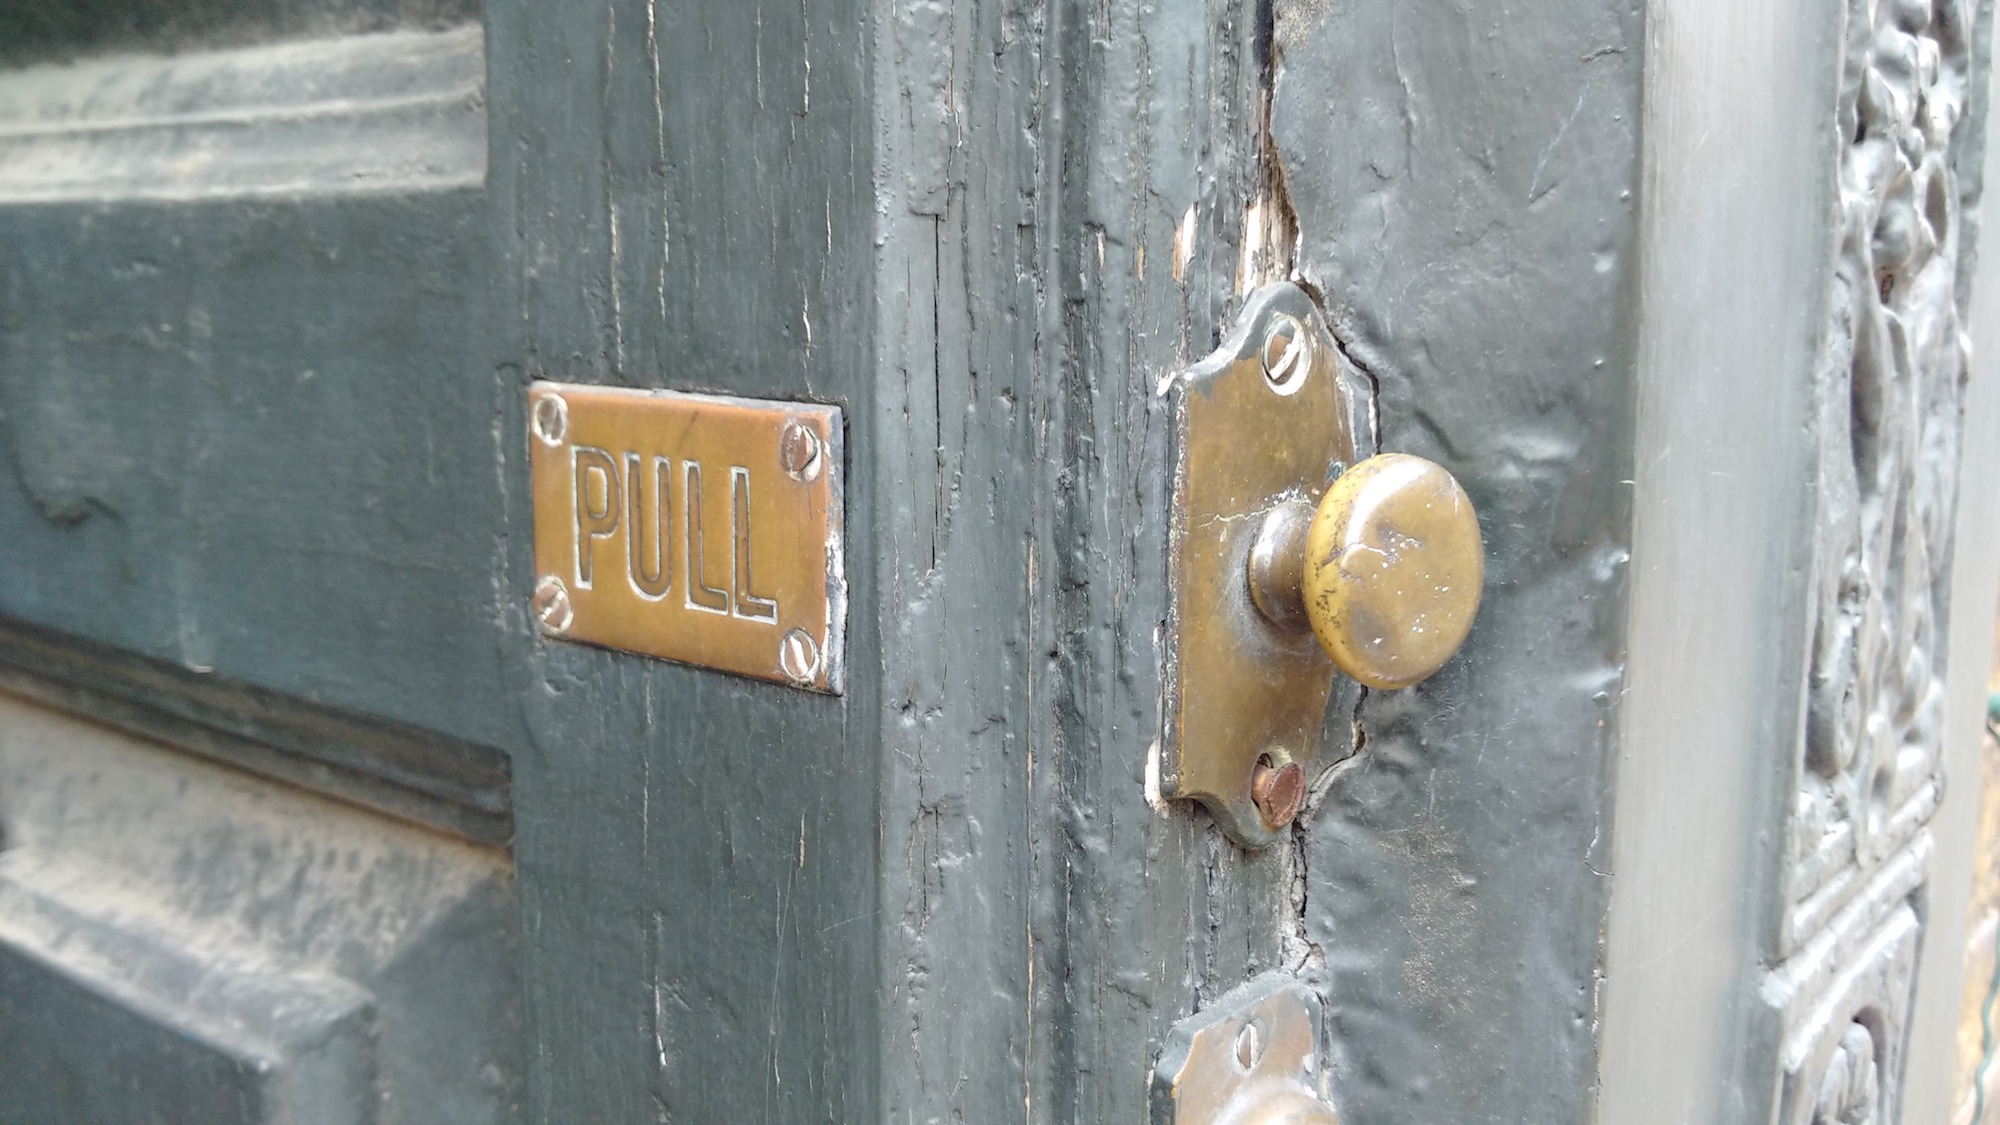 London doorbell and pull